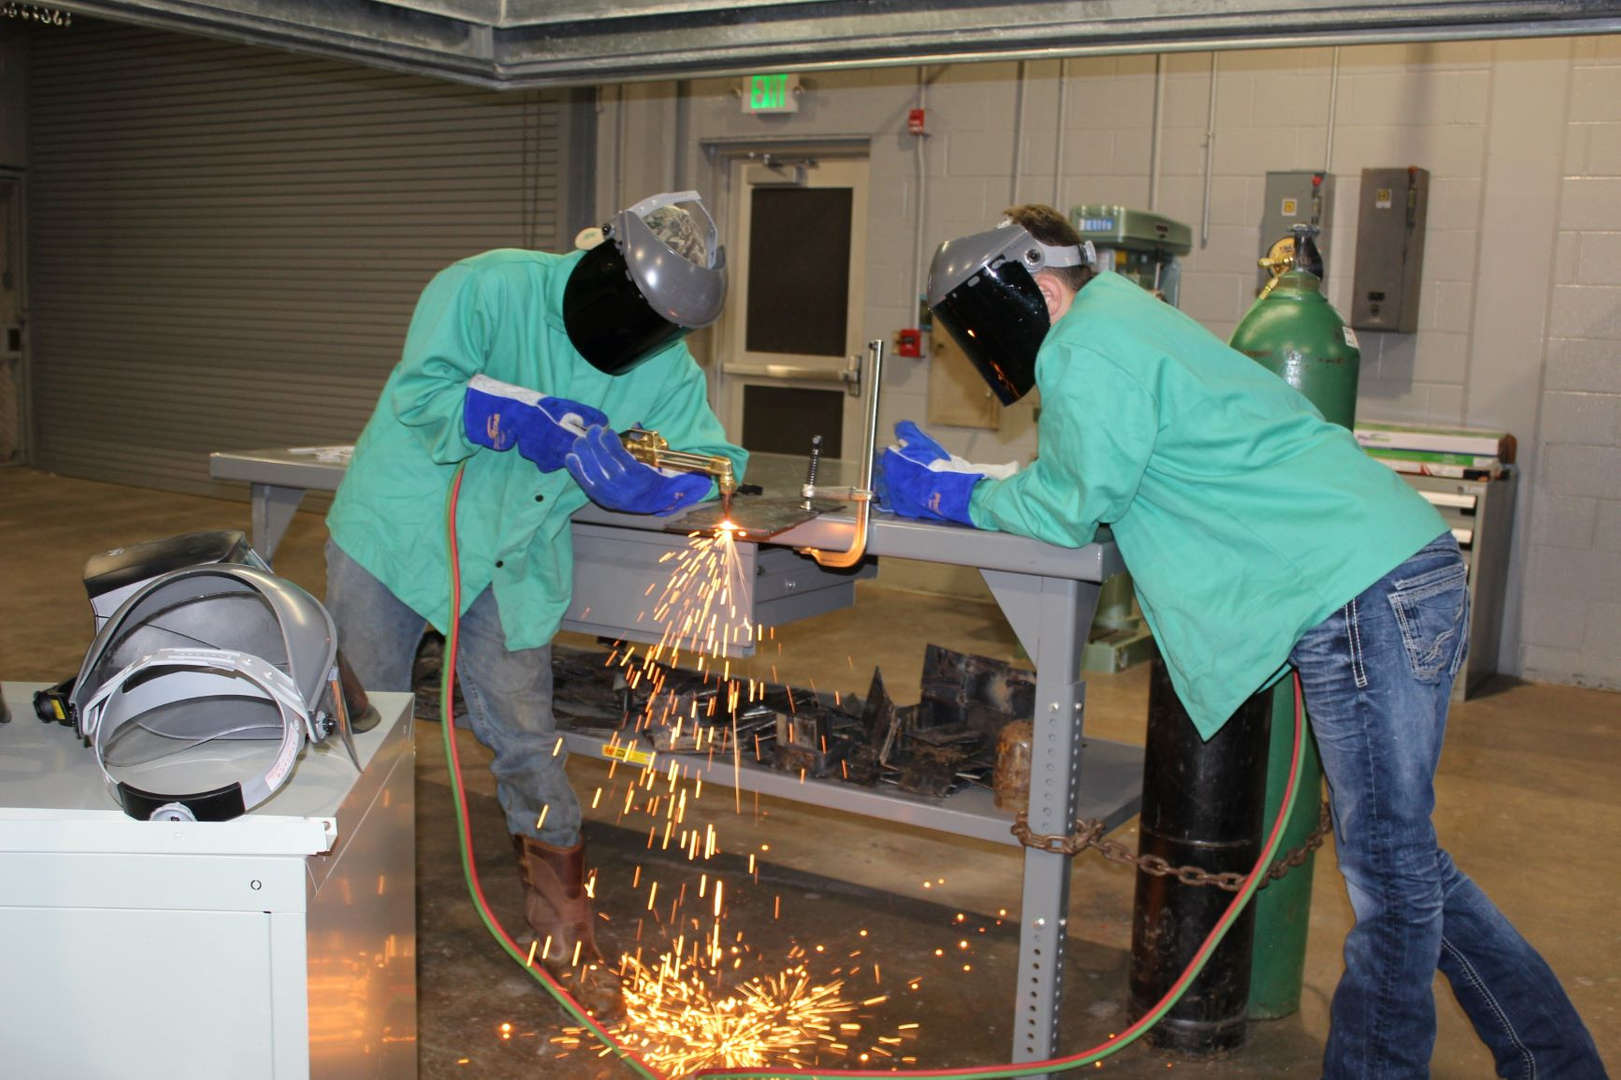 Students at work in welding class.